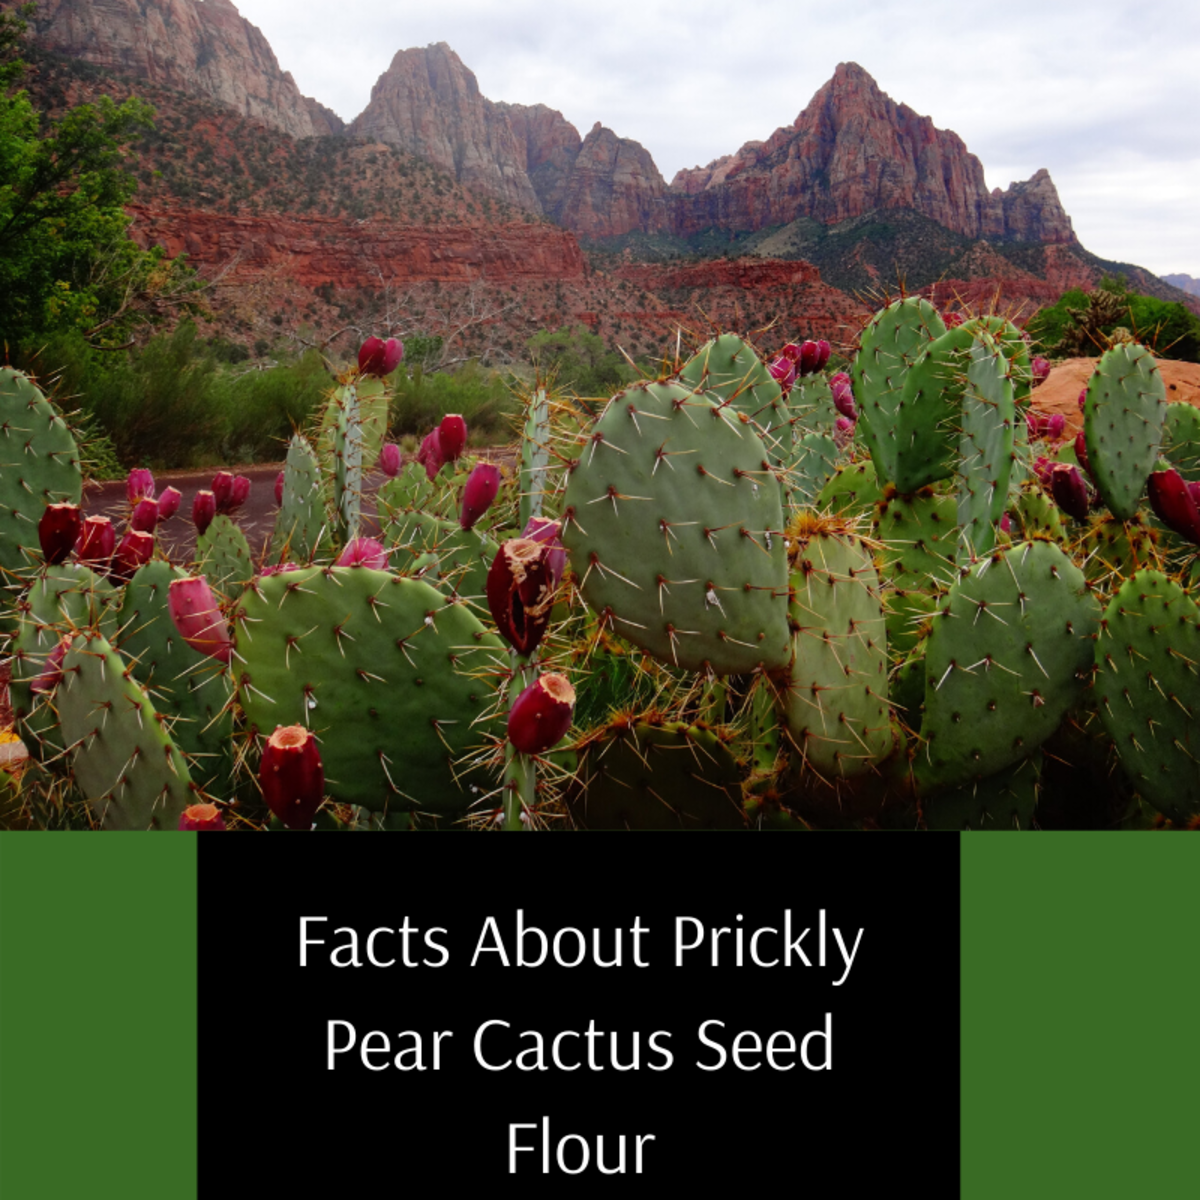 Prickly Pear Cactus Seed Flour